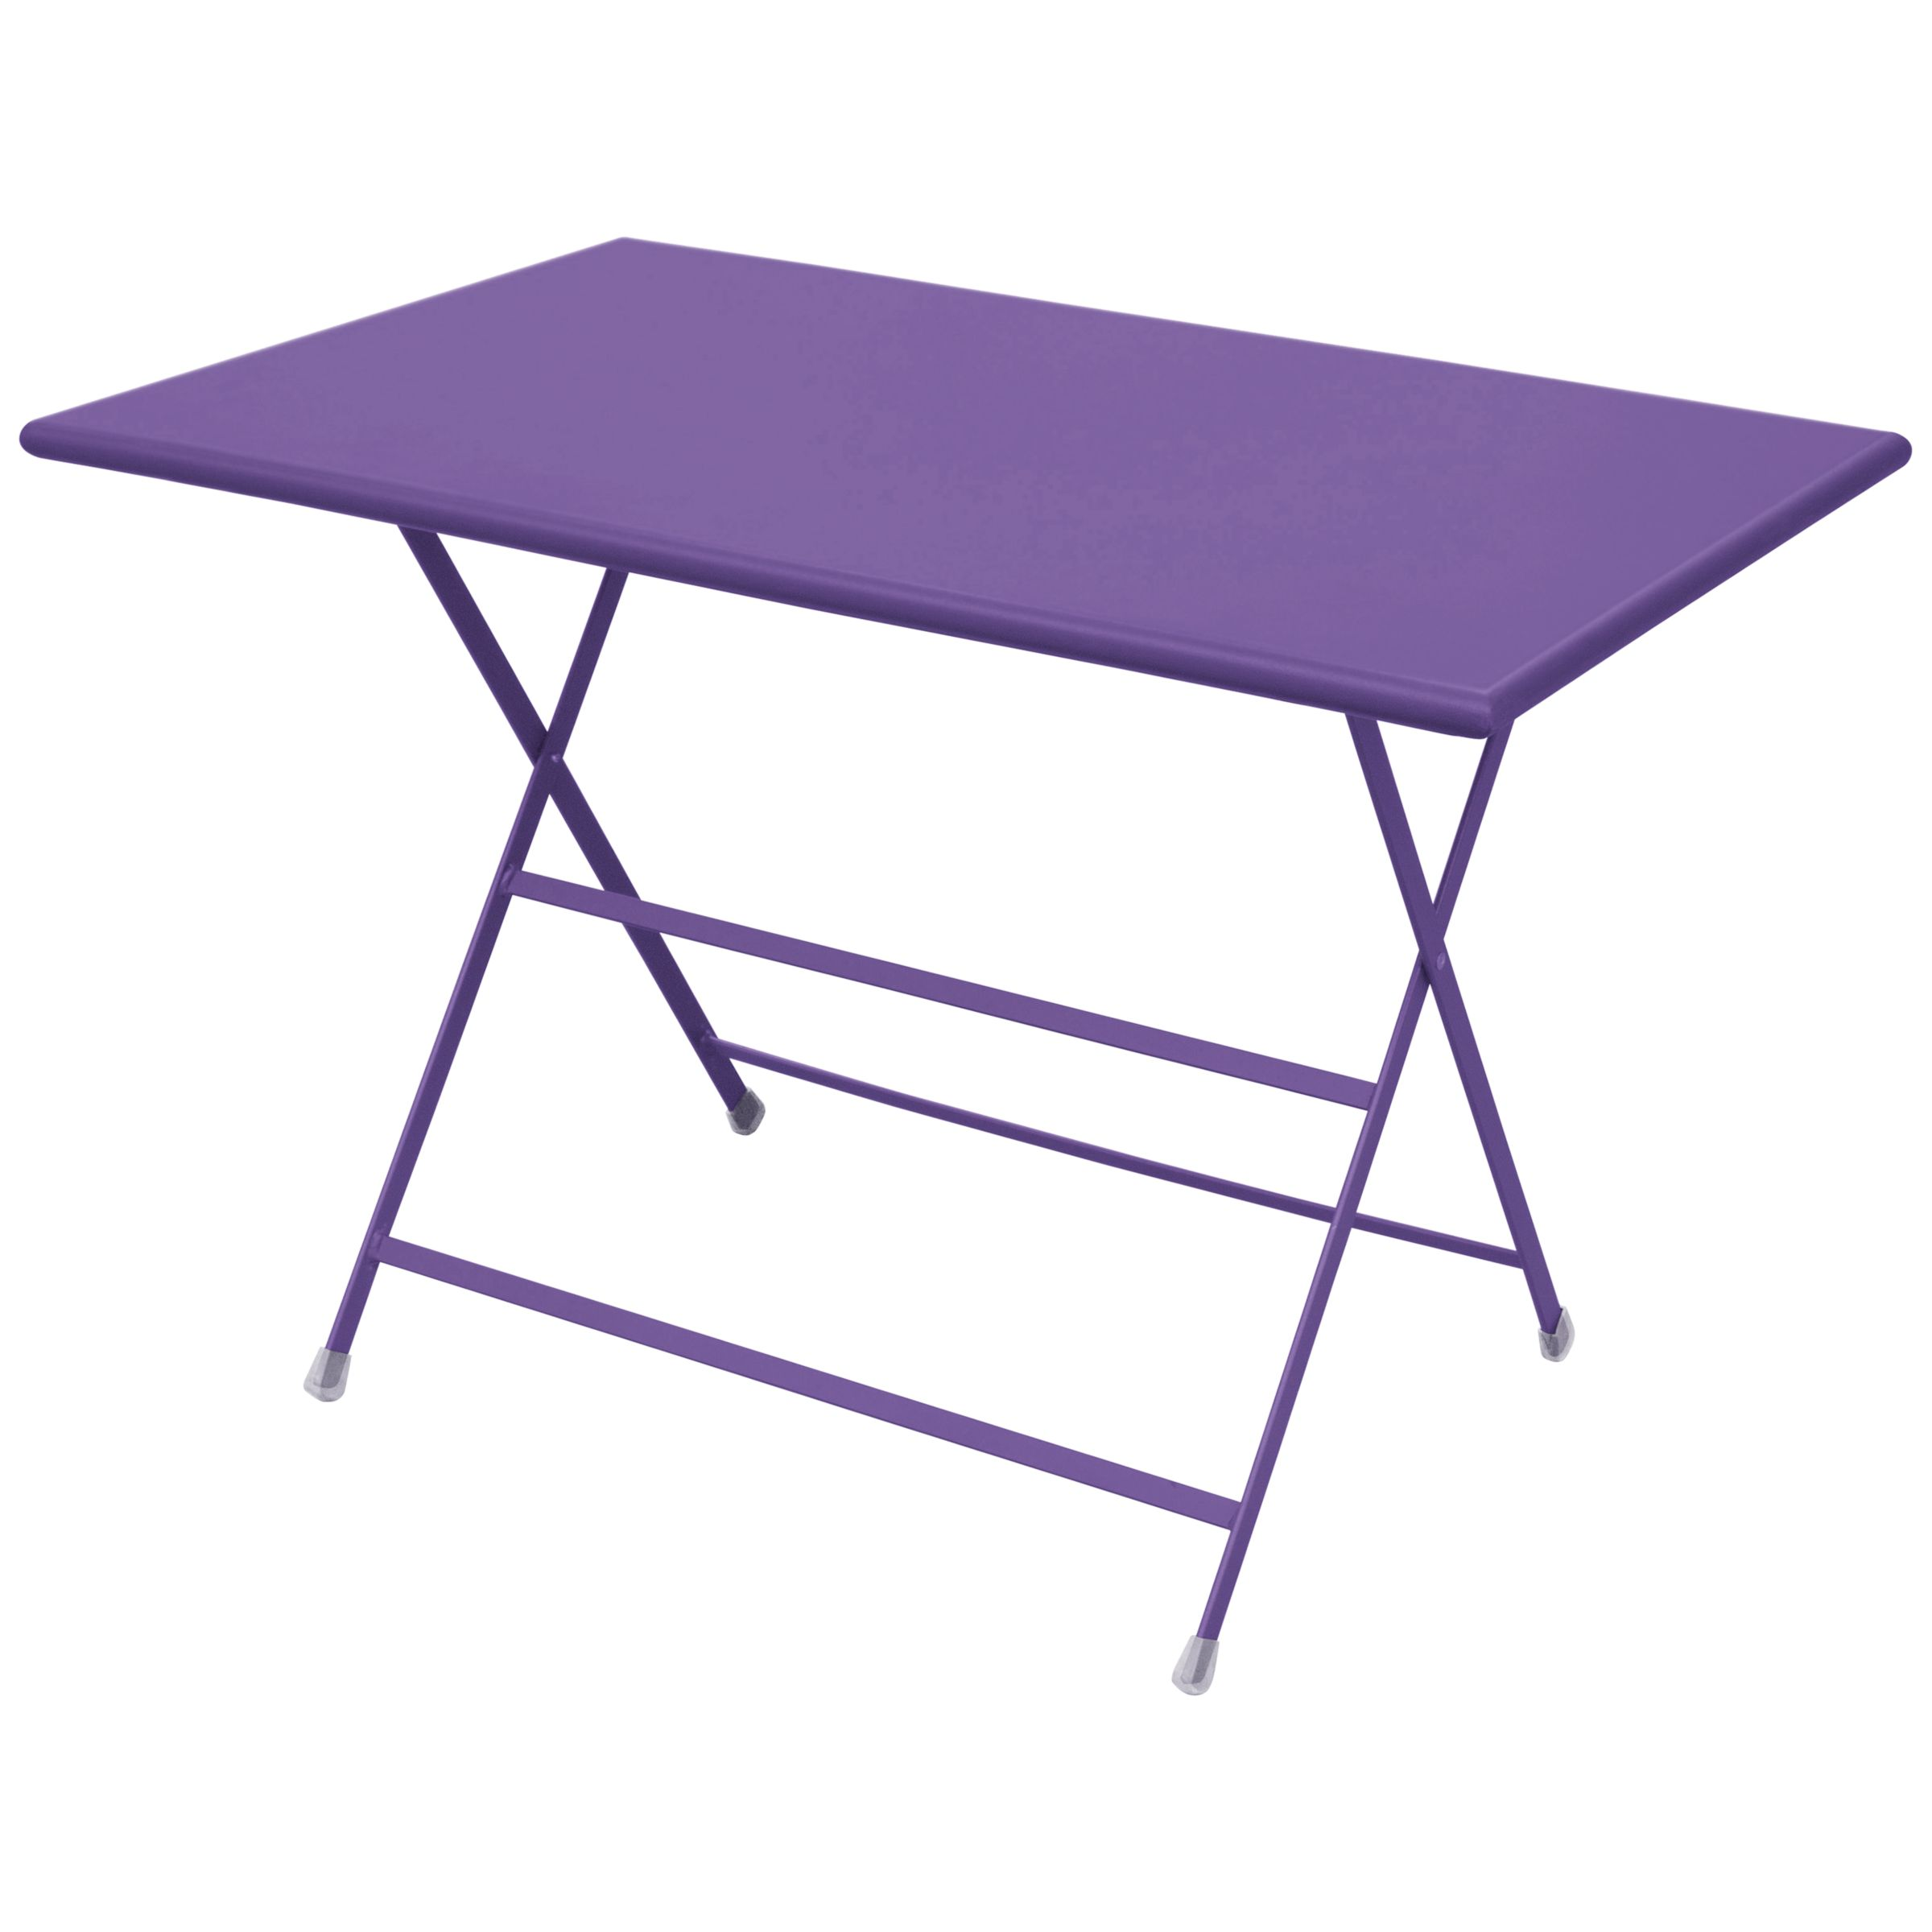 EMU Arc En Ciel Rectangular 4 Seater Outdoor Dining Table, Lilac